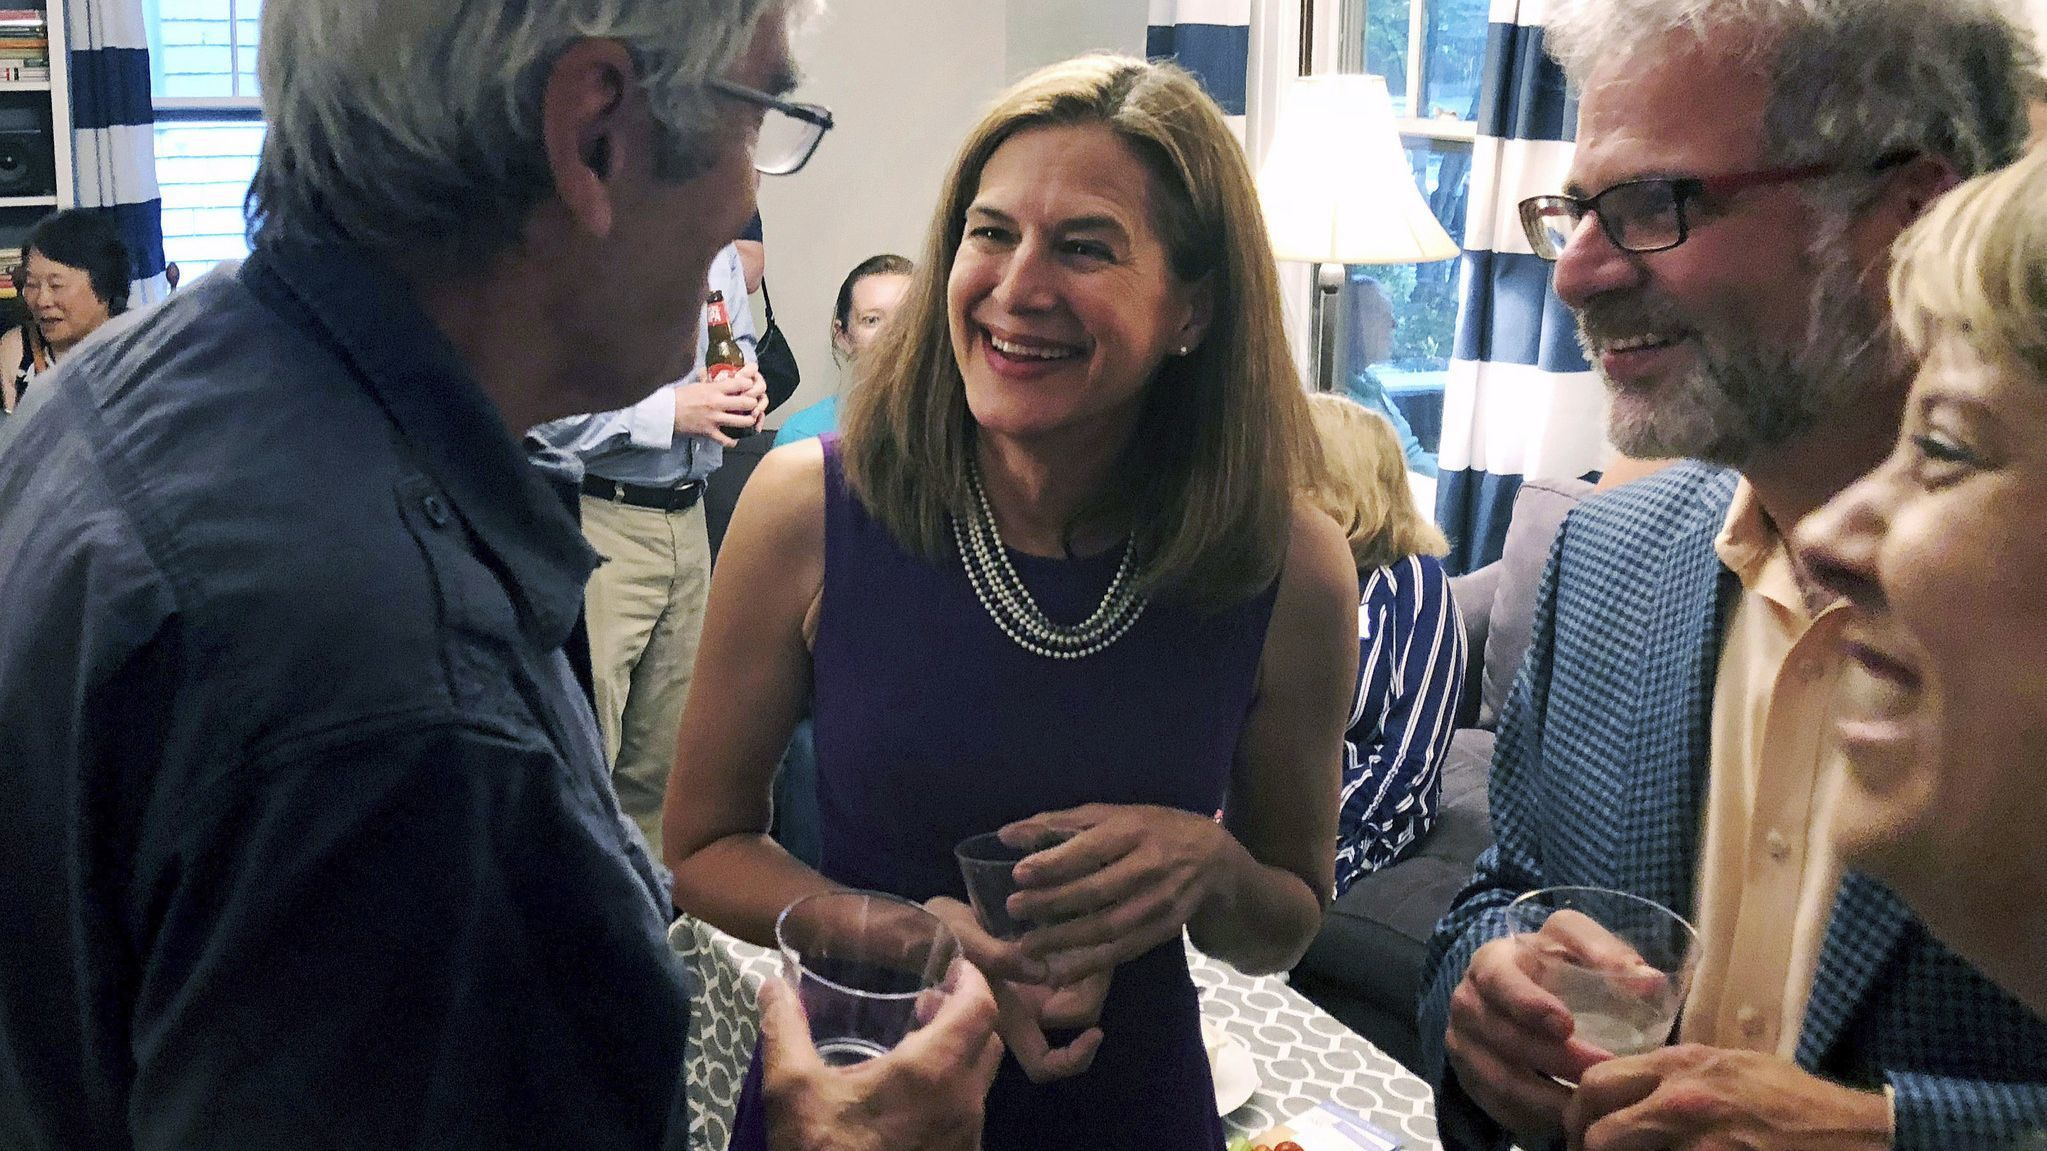 Susan Bysiewicz Defeats Eva Bermudez Zimmerman To Win Democratic Primary For Lieutenant Governor, Will Join Ticket With Ned Lamont | Hartford Courant